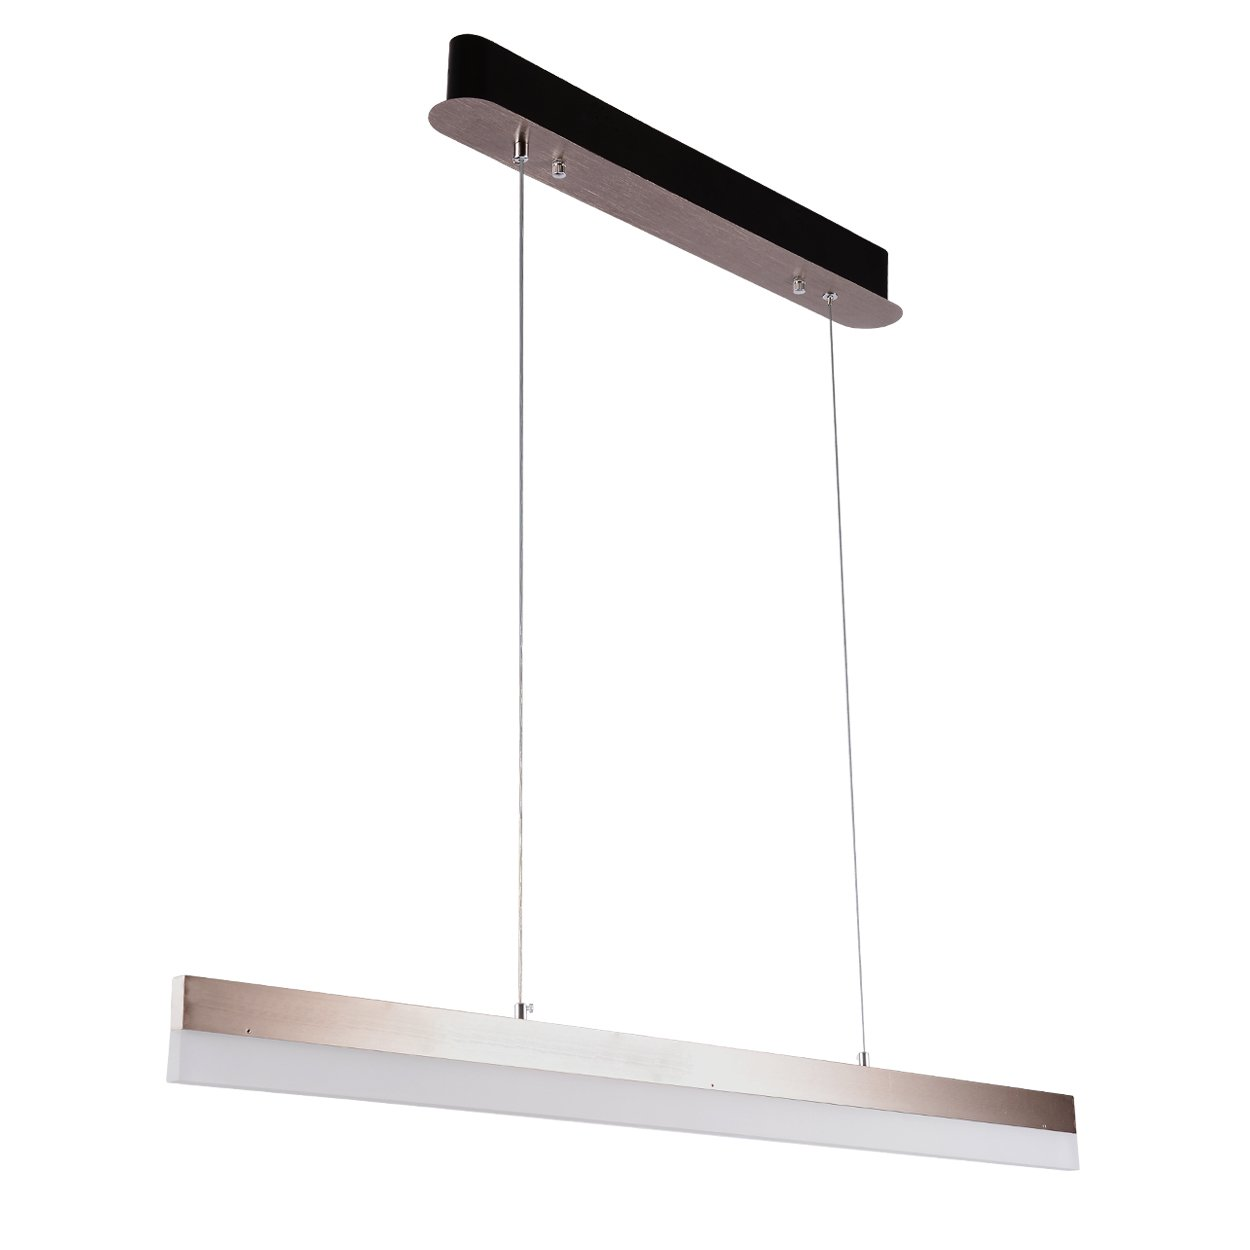 CEENWE Pendant lighting Banagher Chandelier Island light fixtures Linear for Kitchen and dining room,with Adjustable Hanging 2500 lumens LED (40in)